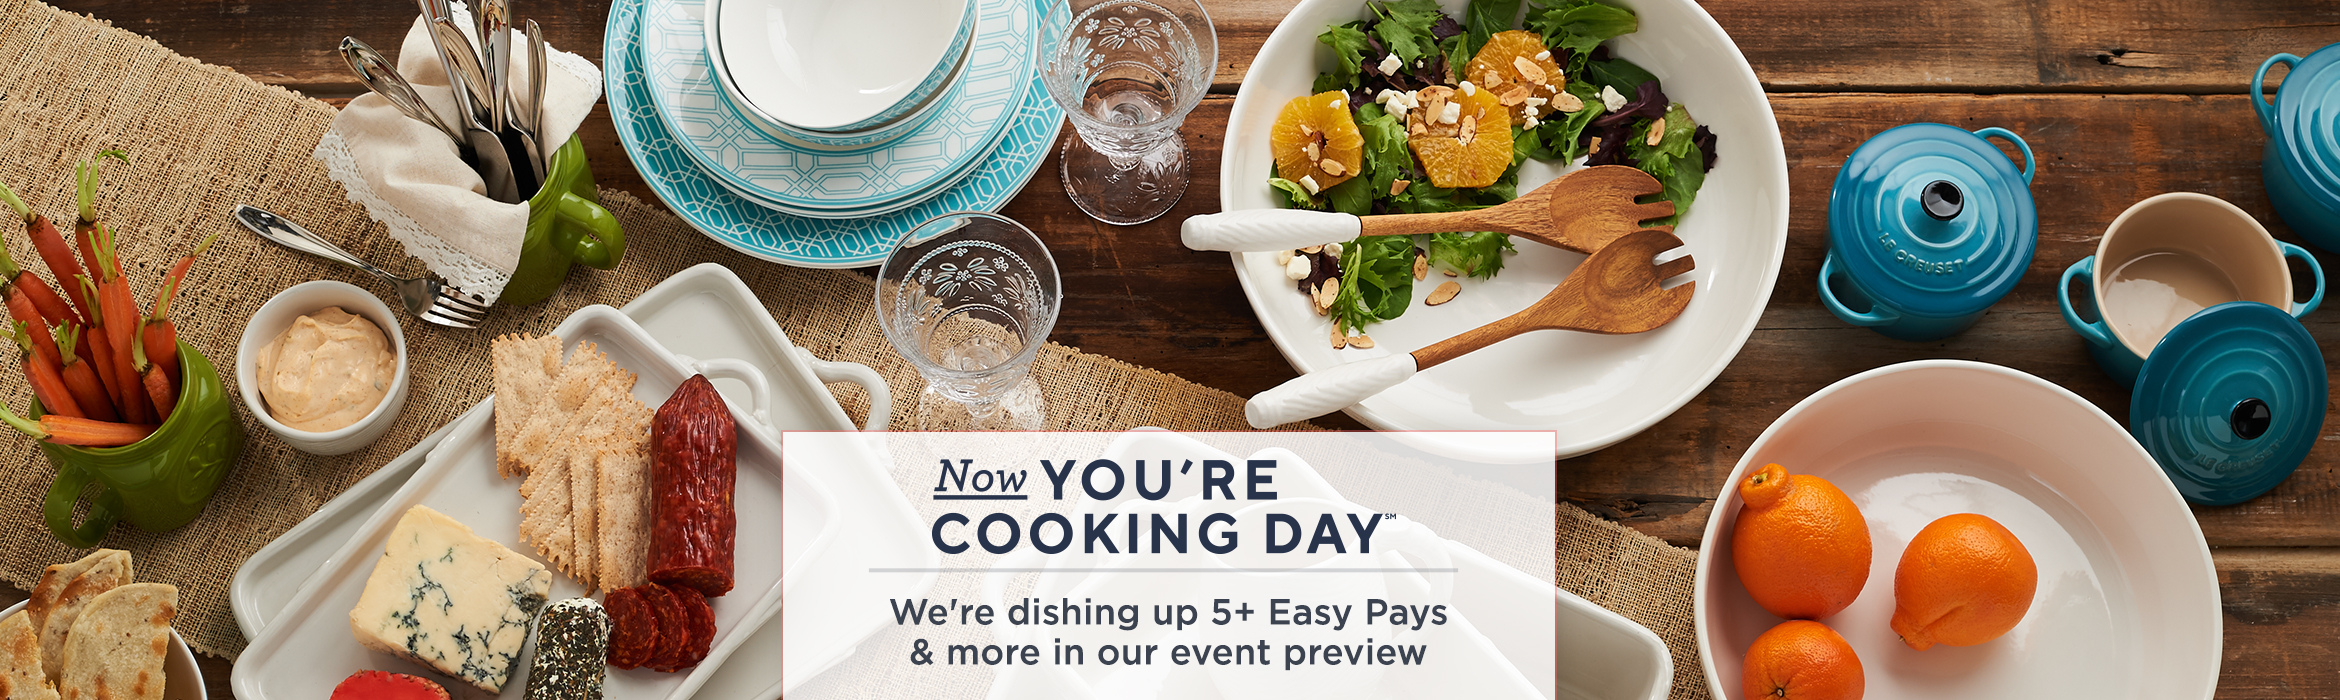 Now You're Cooking Day(SM)  We're dishing up 5+ Easy Pays & more in our event preview